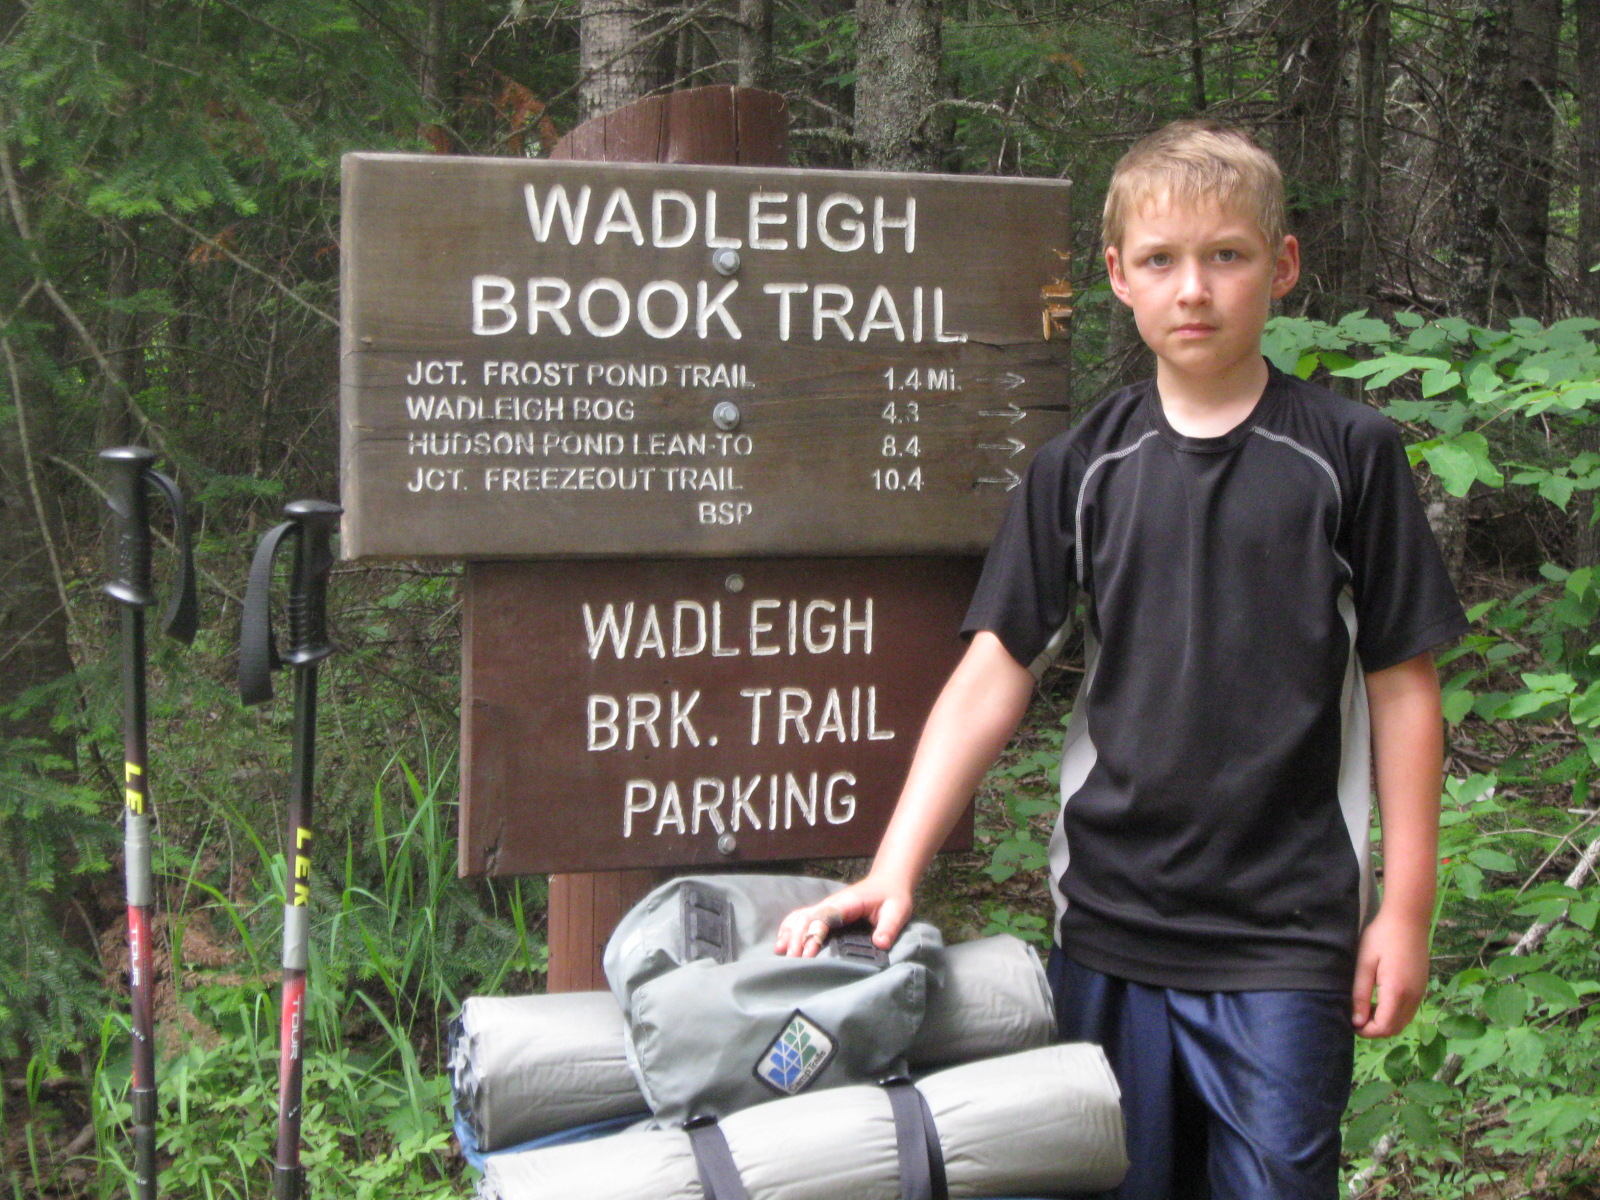 Eight year old Henry at the trailhead